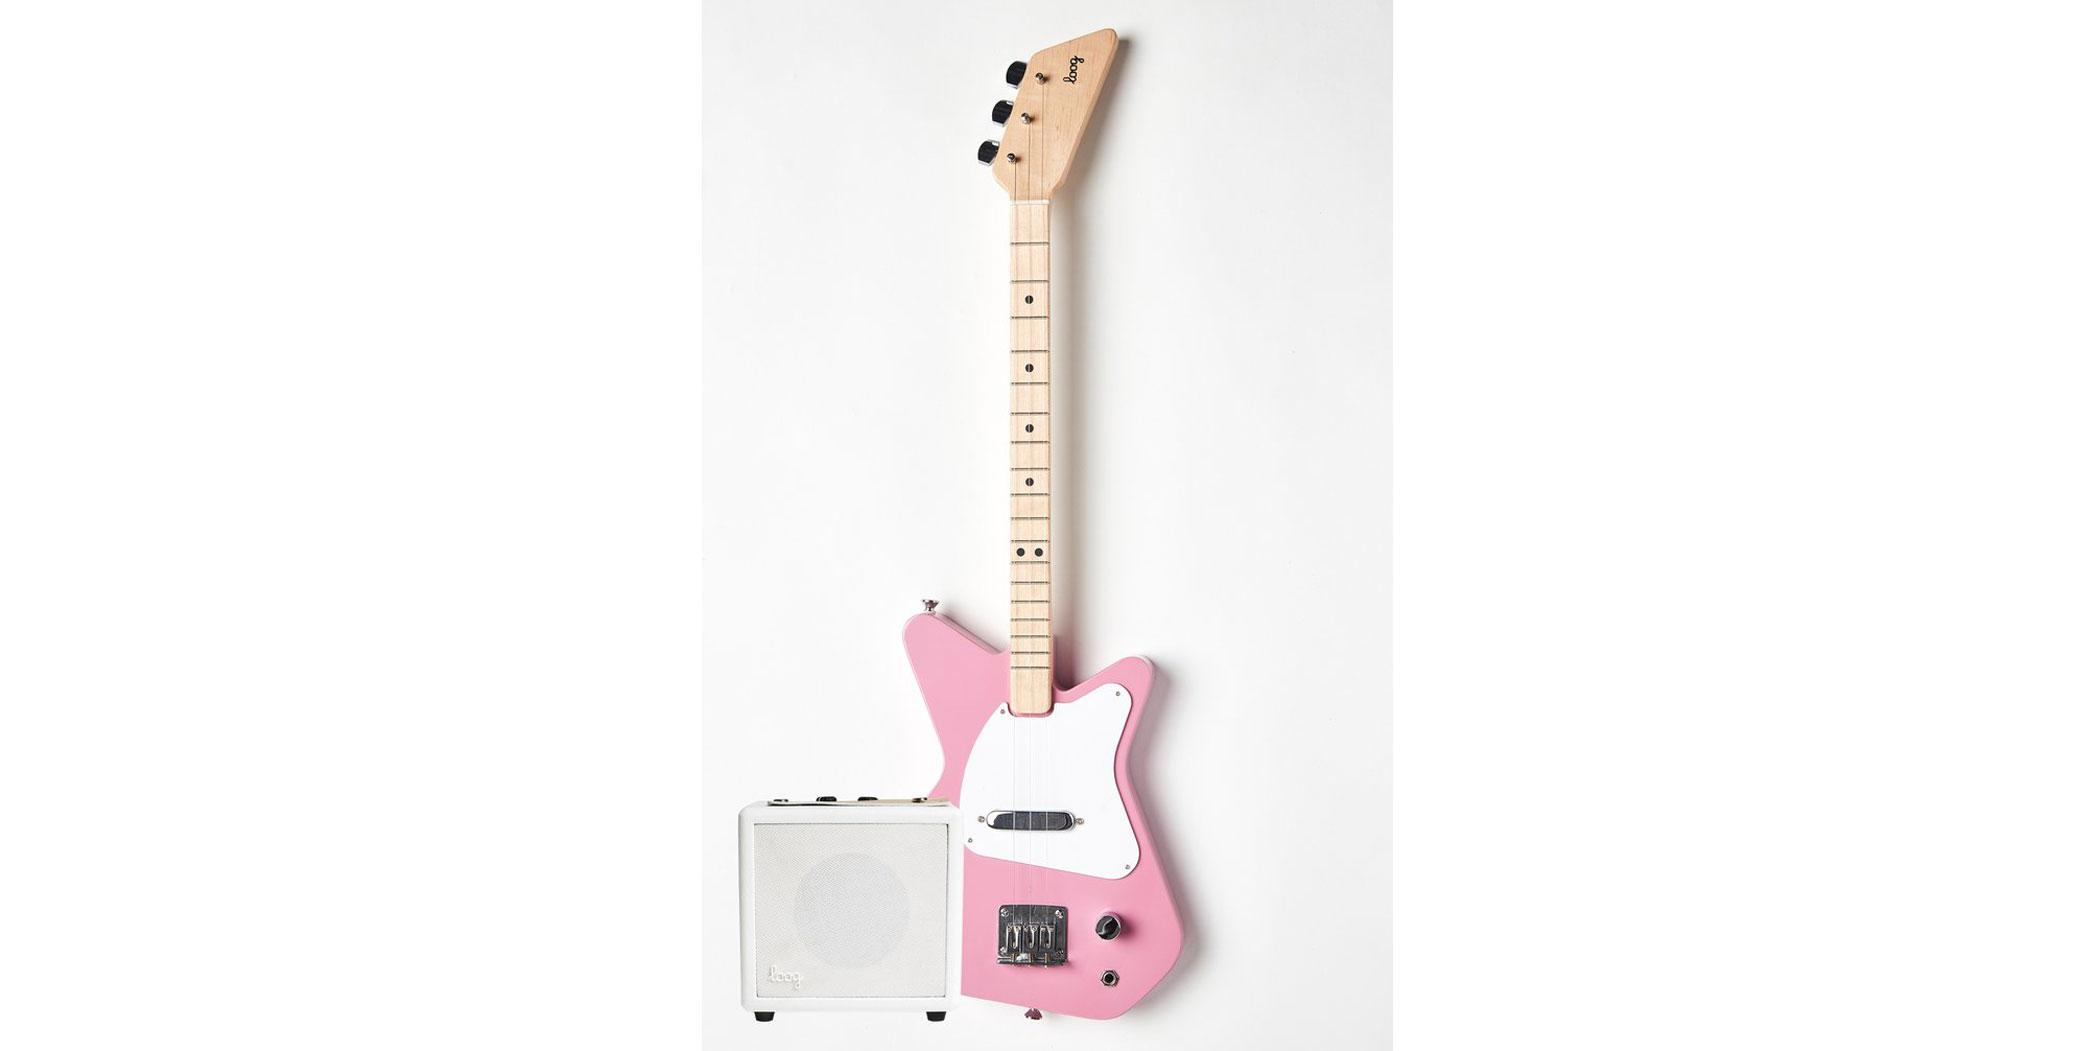 The Loog Pro Electric guitar